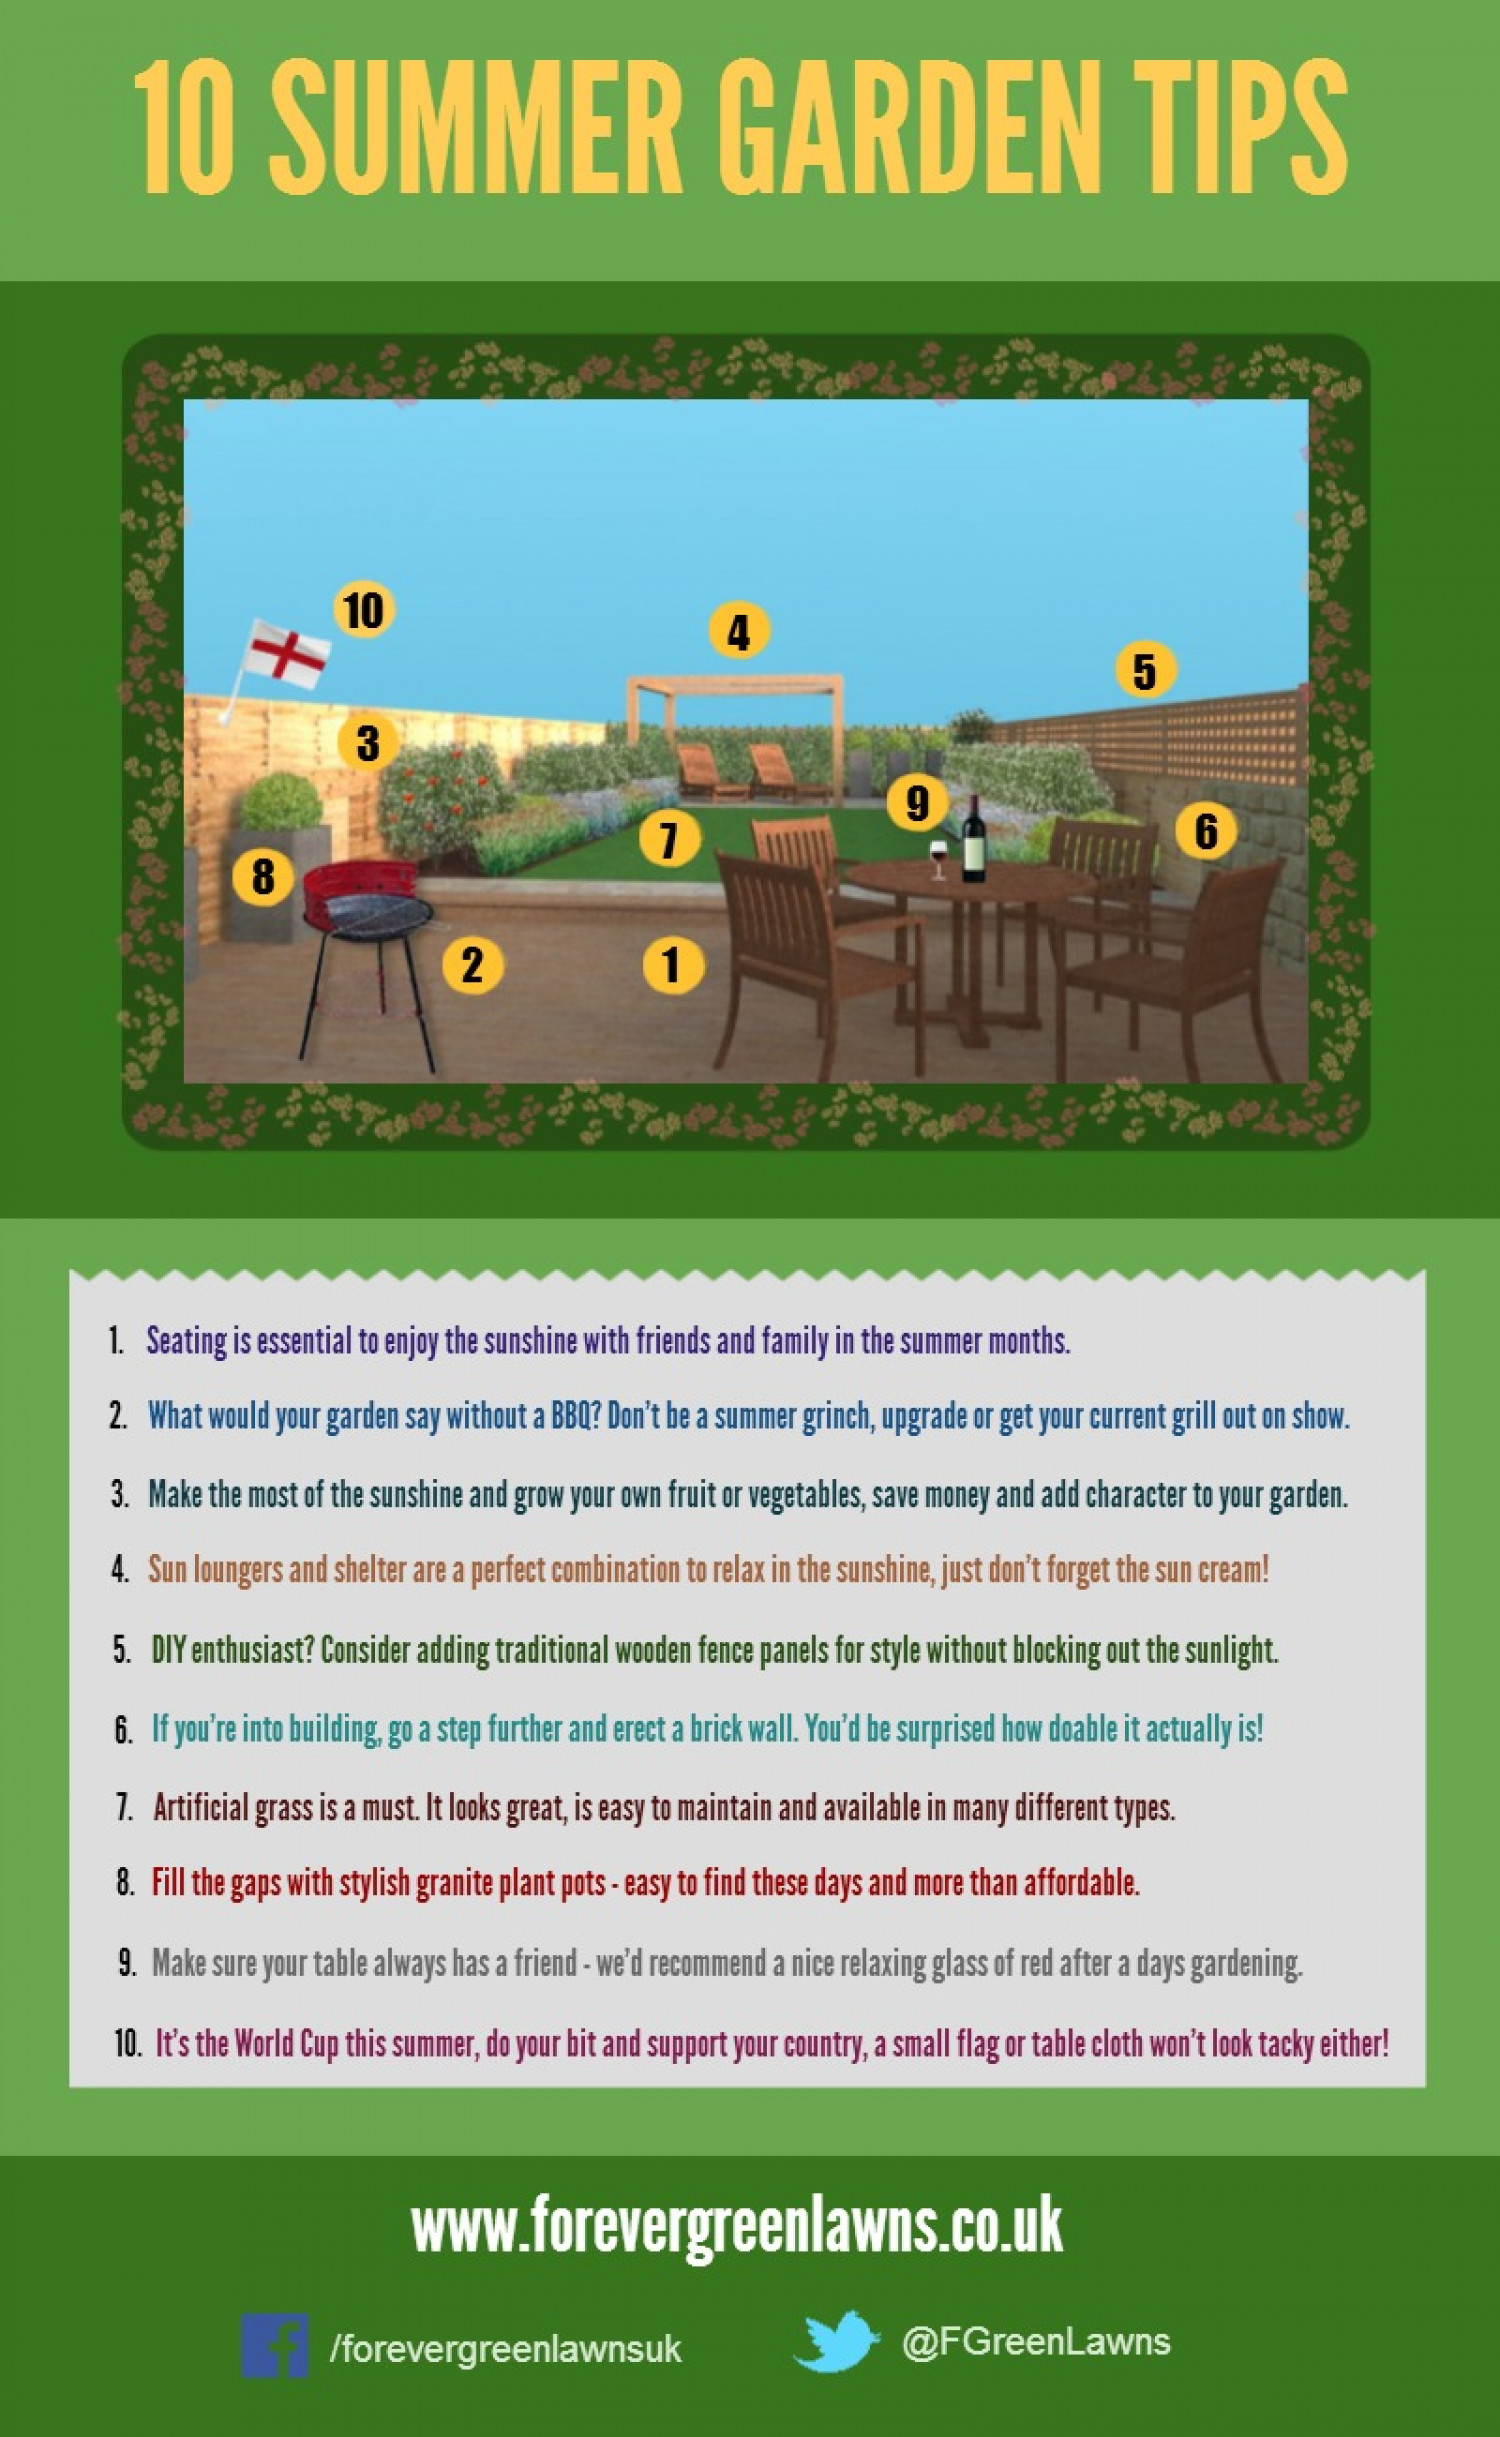 10 Summer Garden Tips Infographic